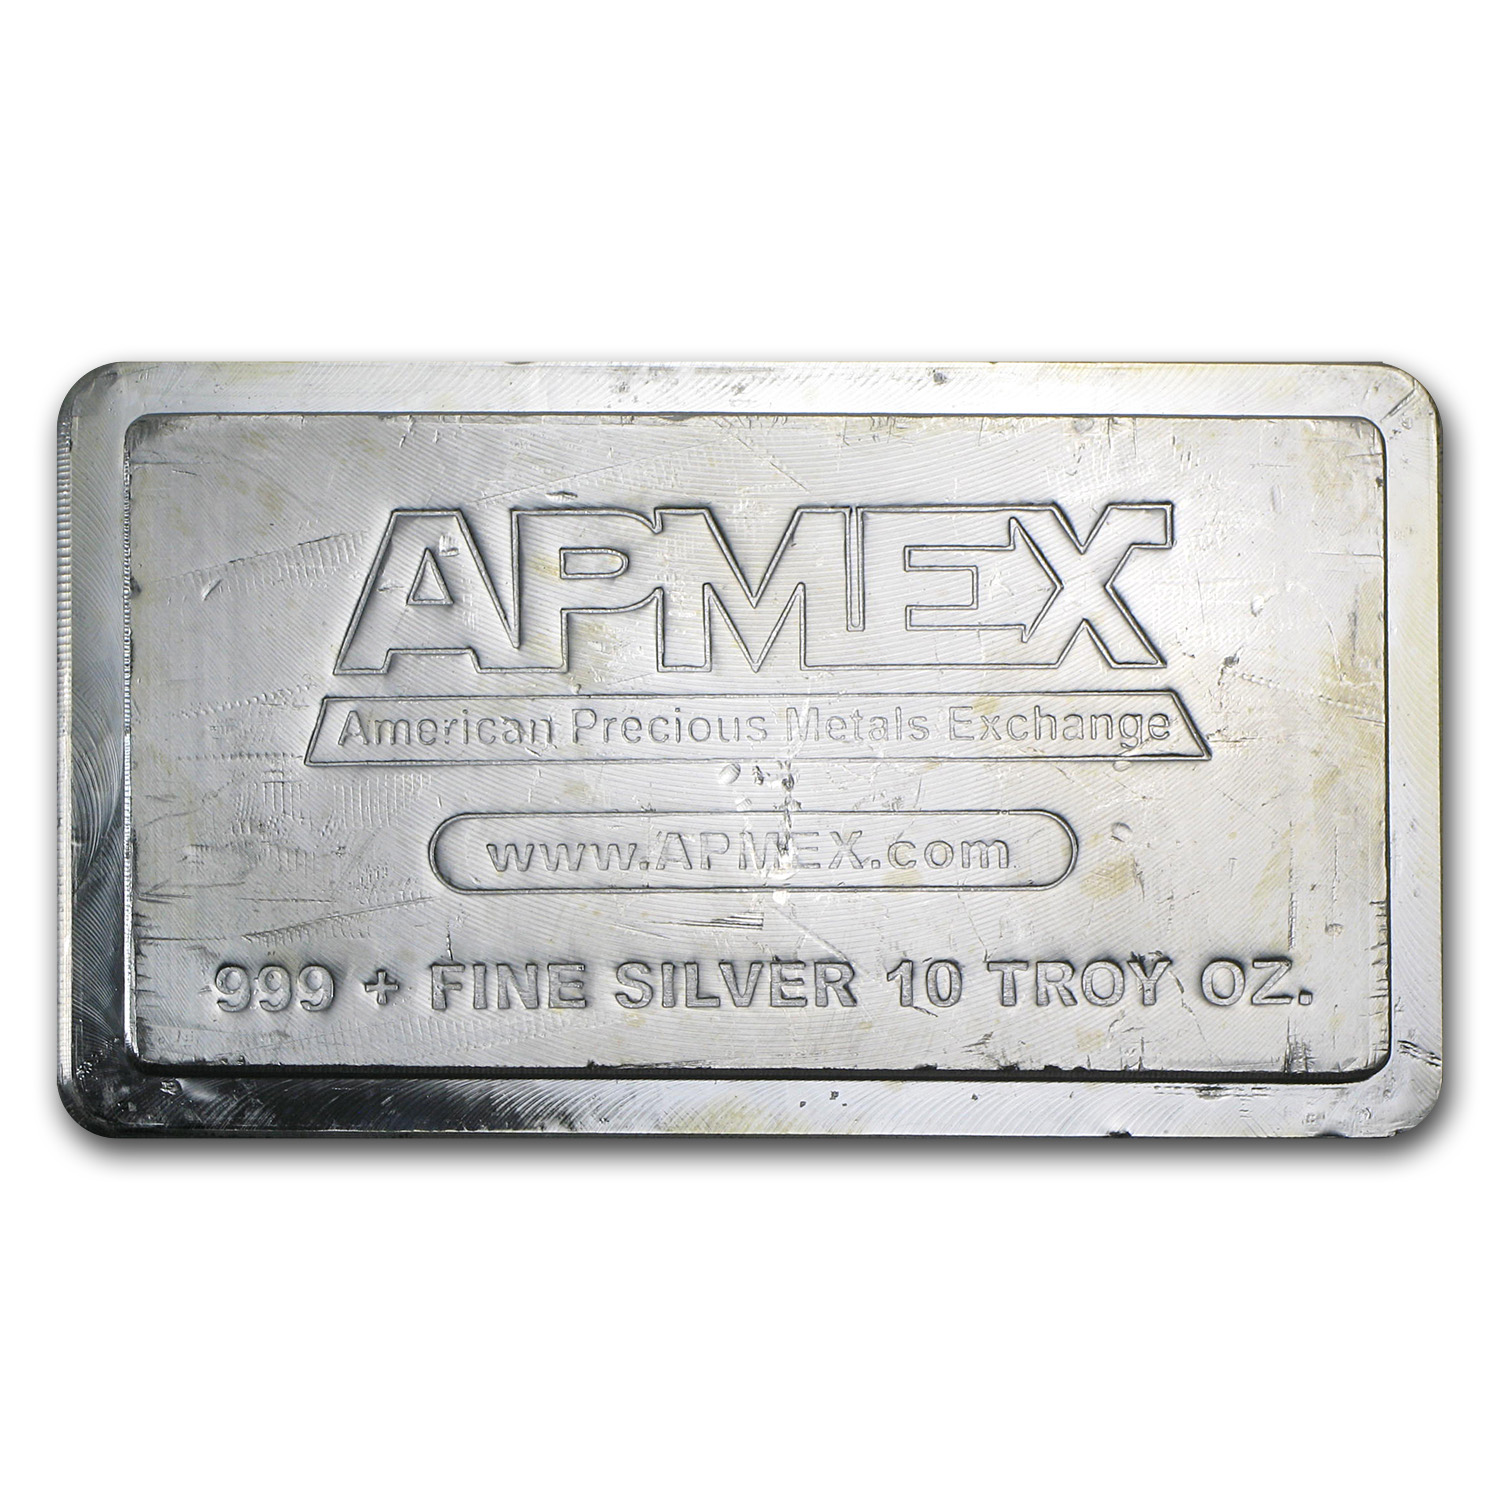 10 oz APMEX Silver Bar (Stackable, IRA Approved) (Scruffy)